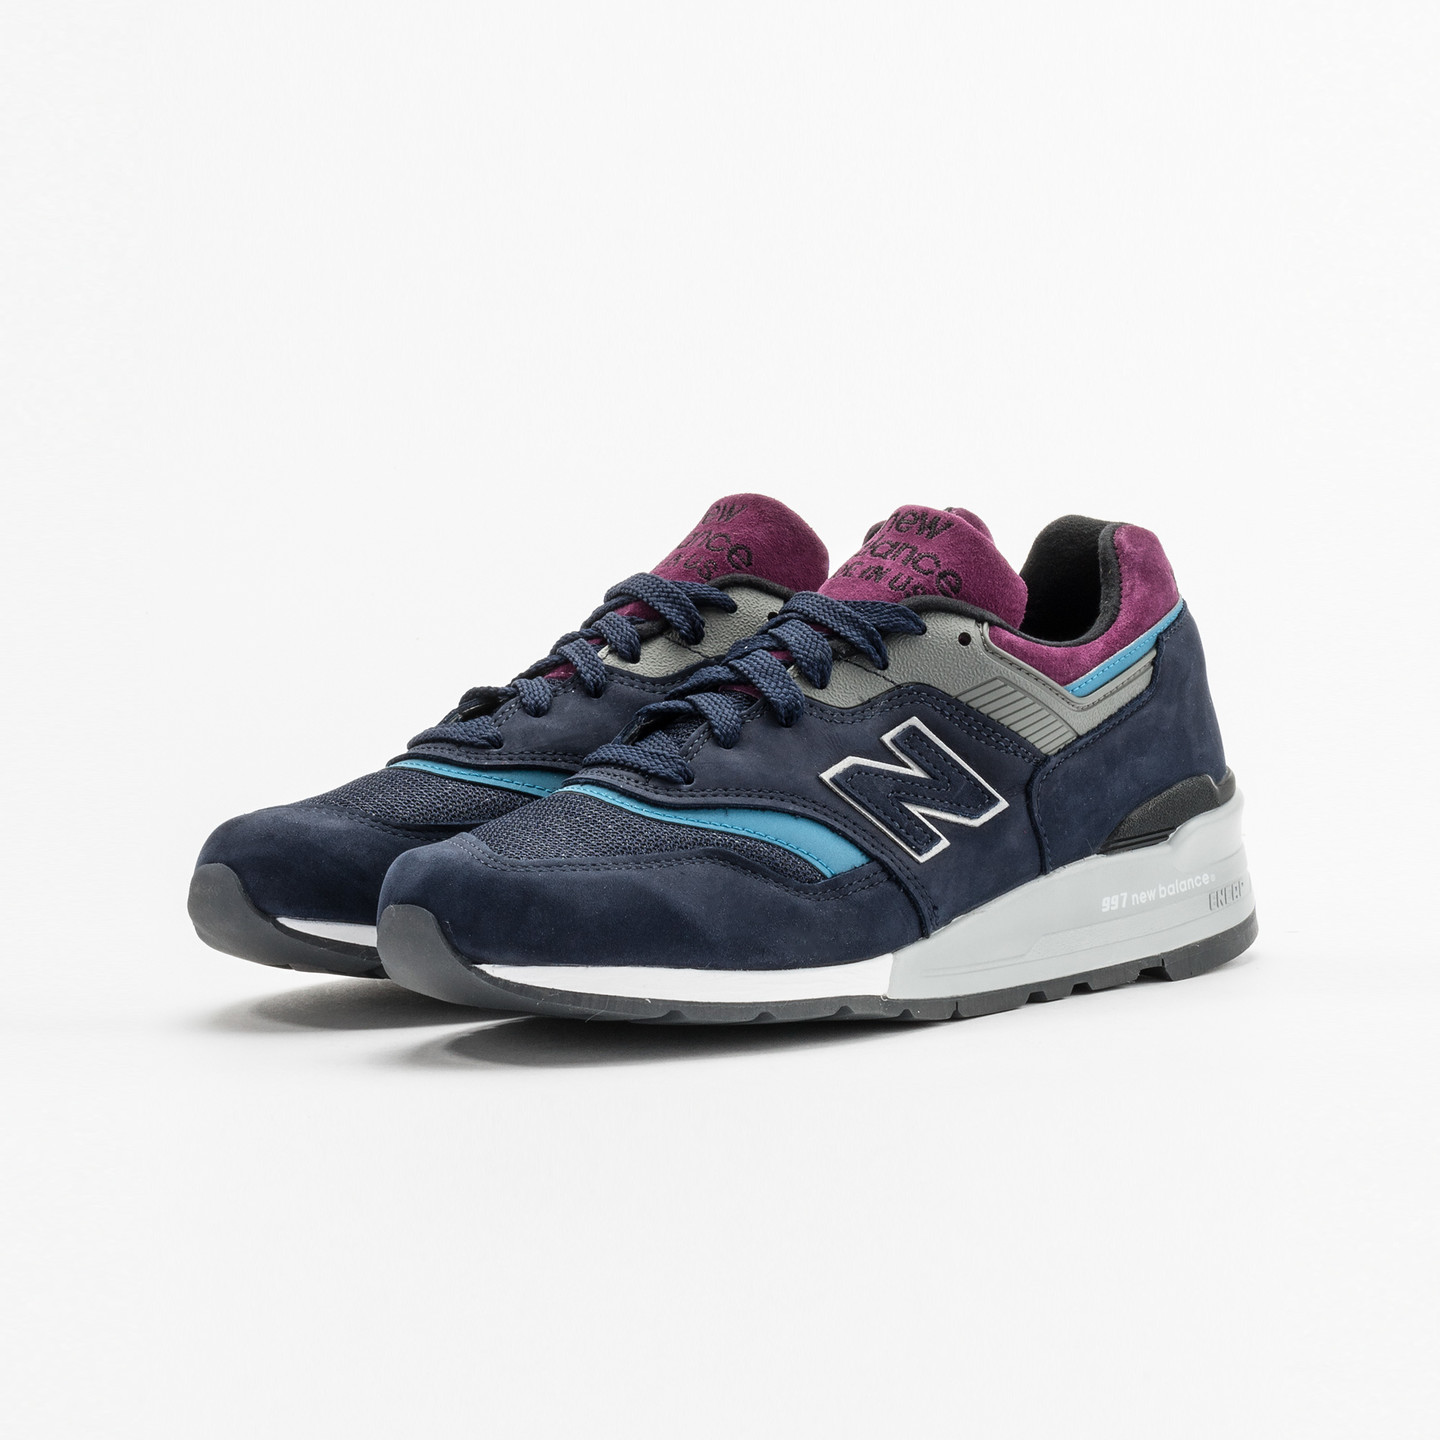 New Balance M997 - Made in USA Navy / Purple / Grey M997PTB